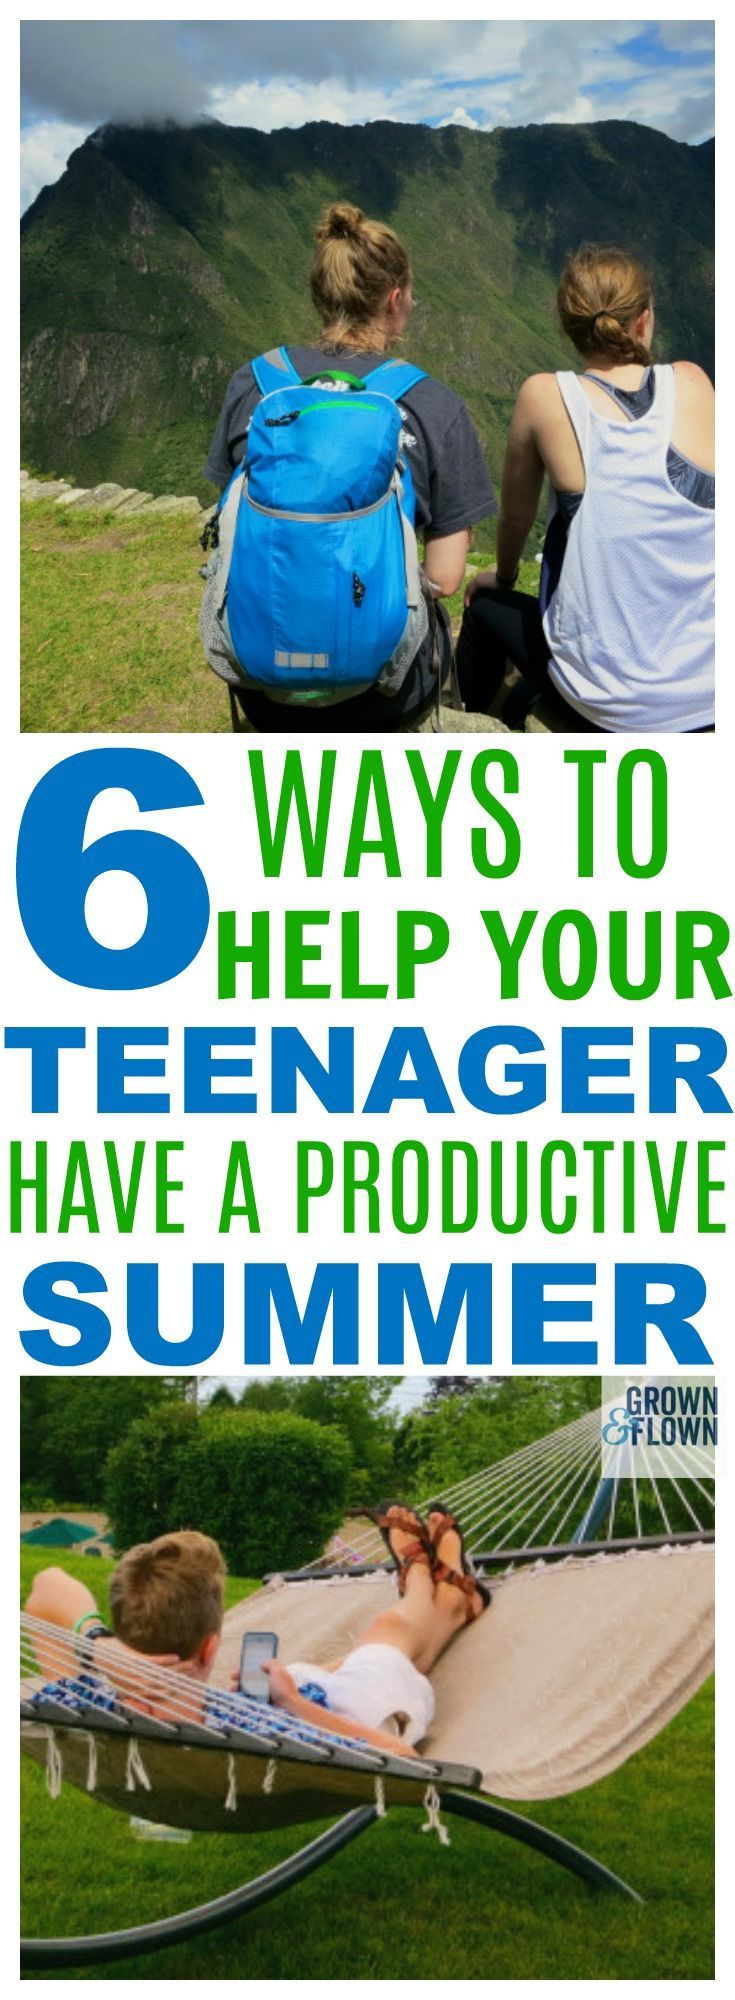 Summer for teens doesn't have to be all about finding summer jobs. The summer time can actually be a really great time for your teen to accomplish a lot of really great things that will prepare them for life. Here are 6 ideas of things your teenagers can do this summer aside from getting a summer job. #summer #teens #teenagers #parentingteens #teen #highschool #summerjob #summerideasforteens #summerkidideas